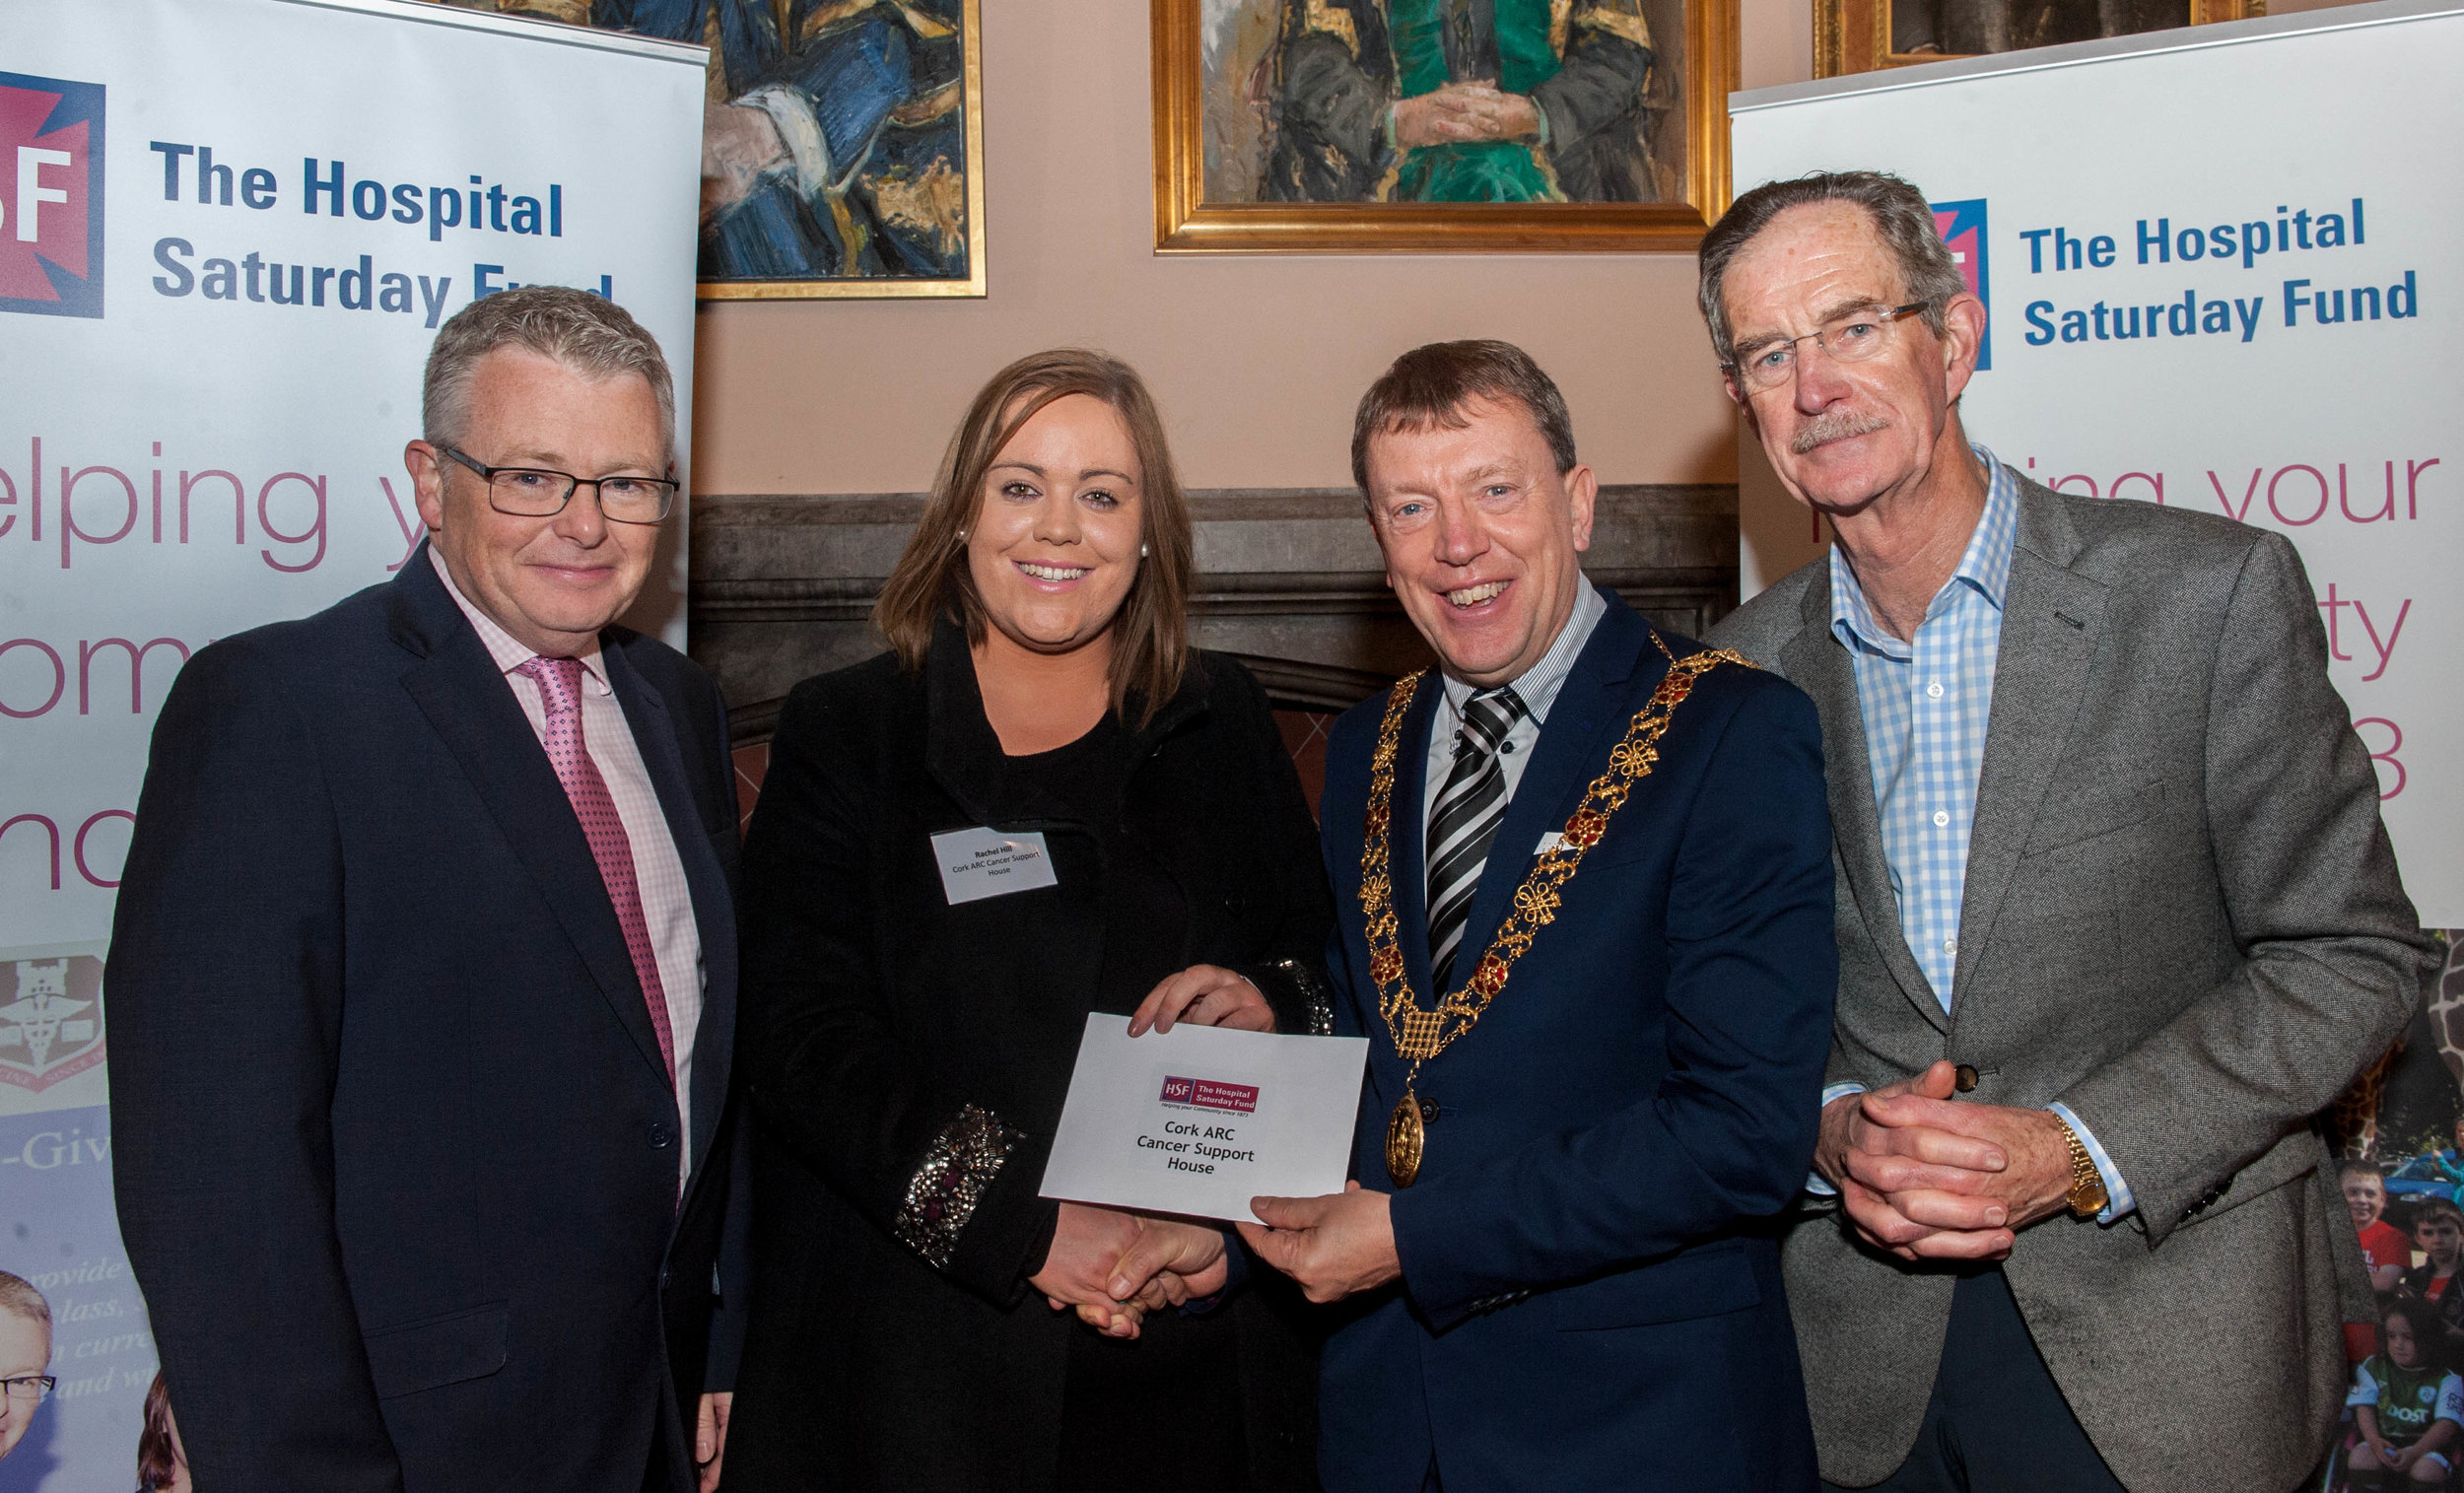 Presentation to Cork ARC Cancer Support House